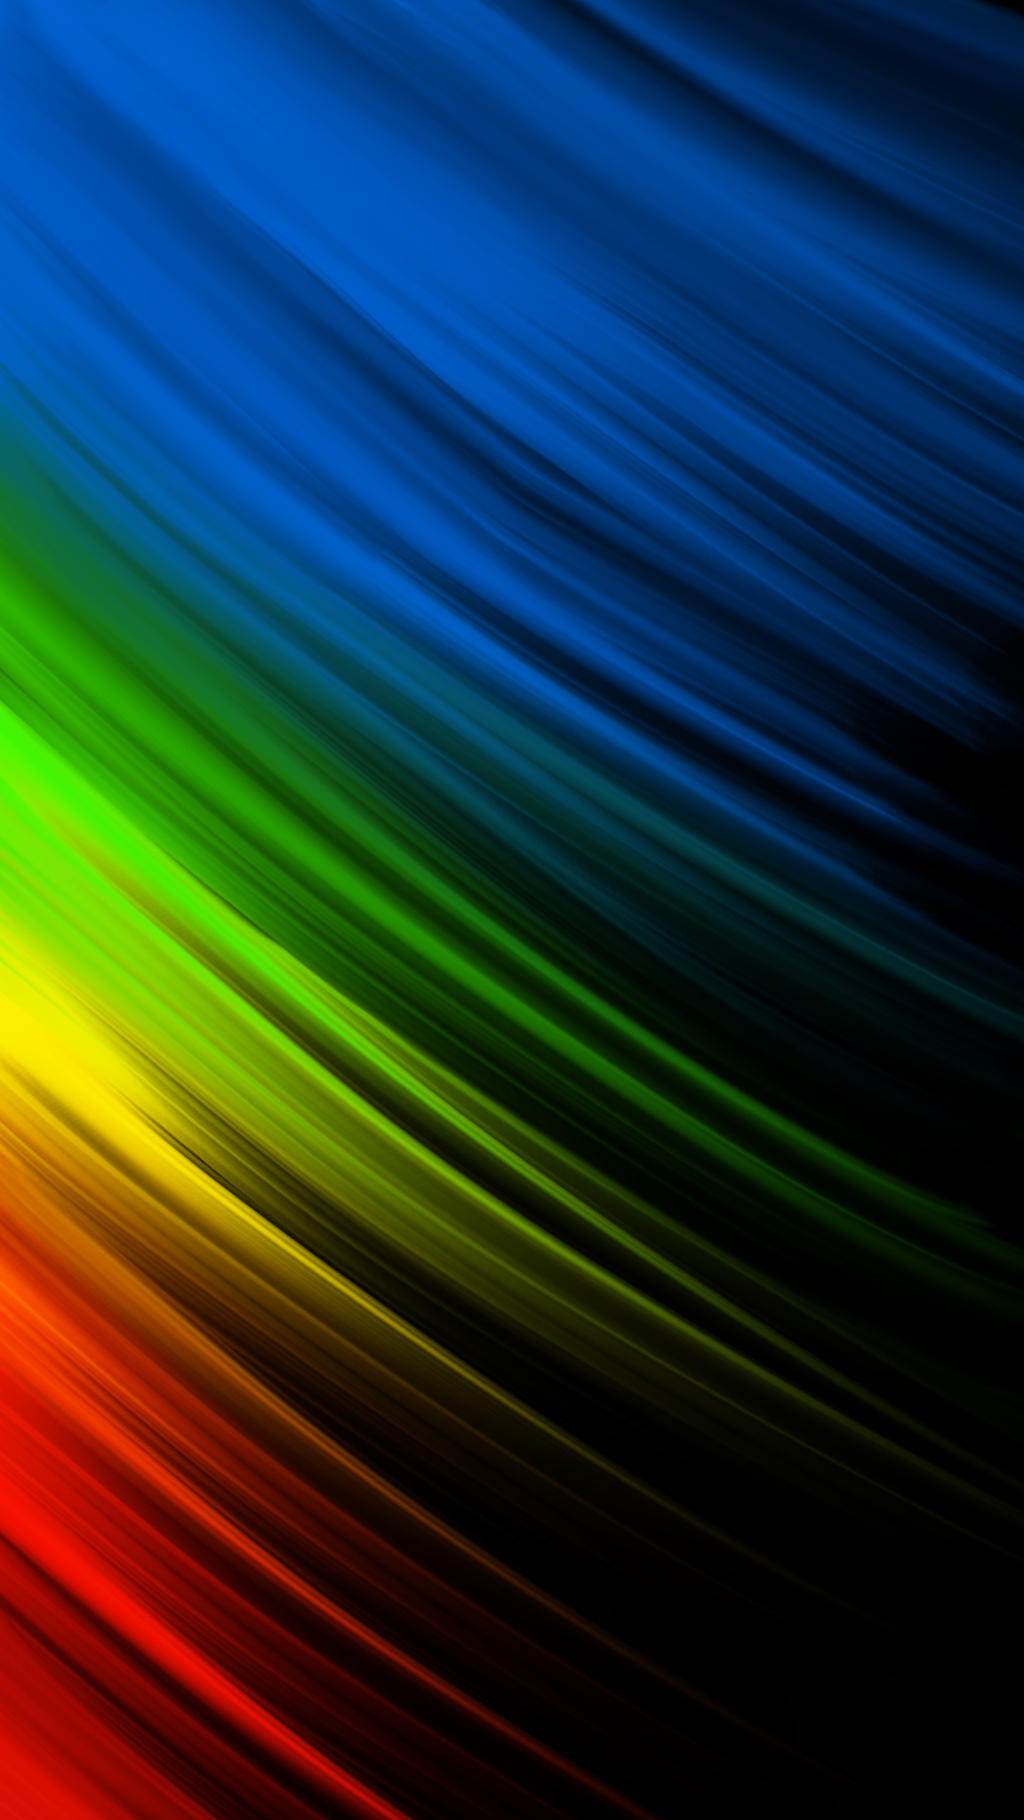 color rays on black 1440x2560 wallpaper by el3aleyle on